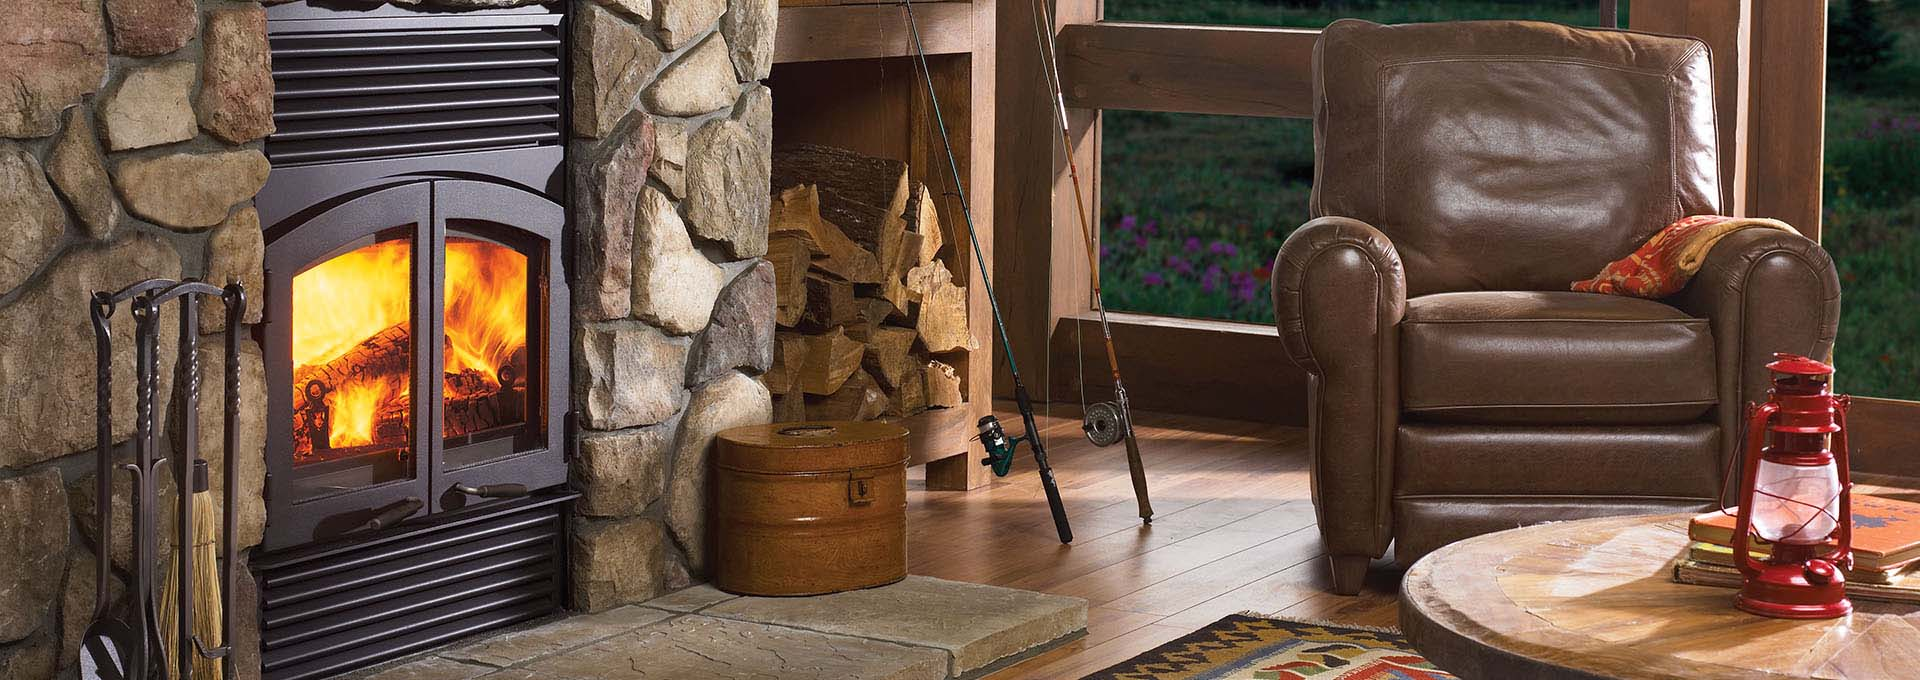 istock the home wood s favourite cleaner fire our it time way design why life get its fireplace to burning rethink warm for quest garden and